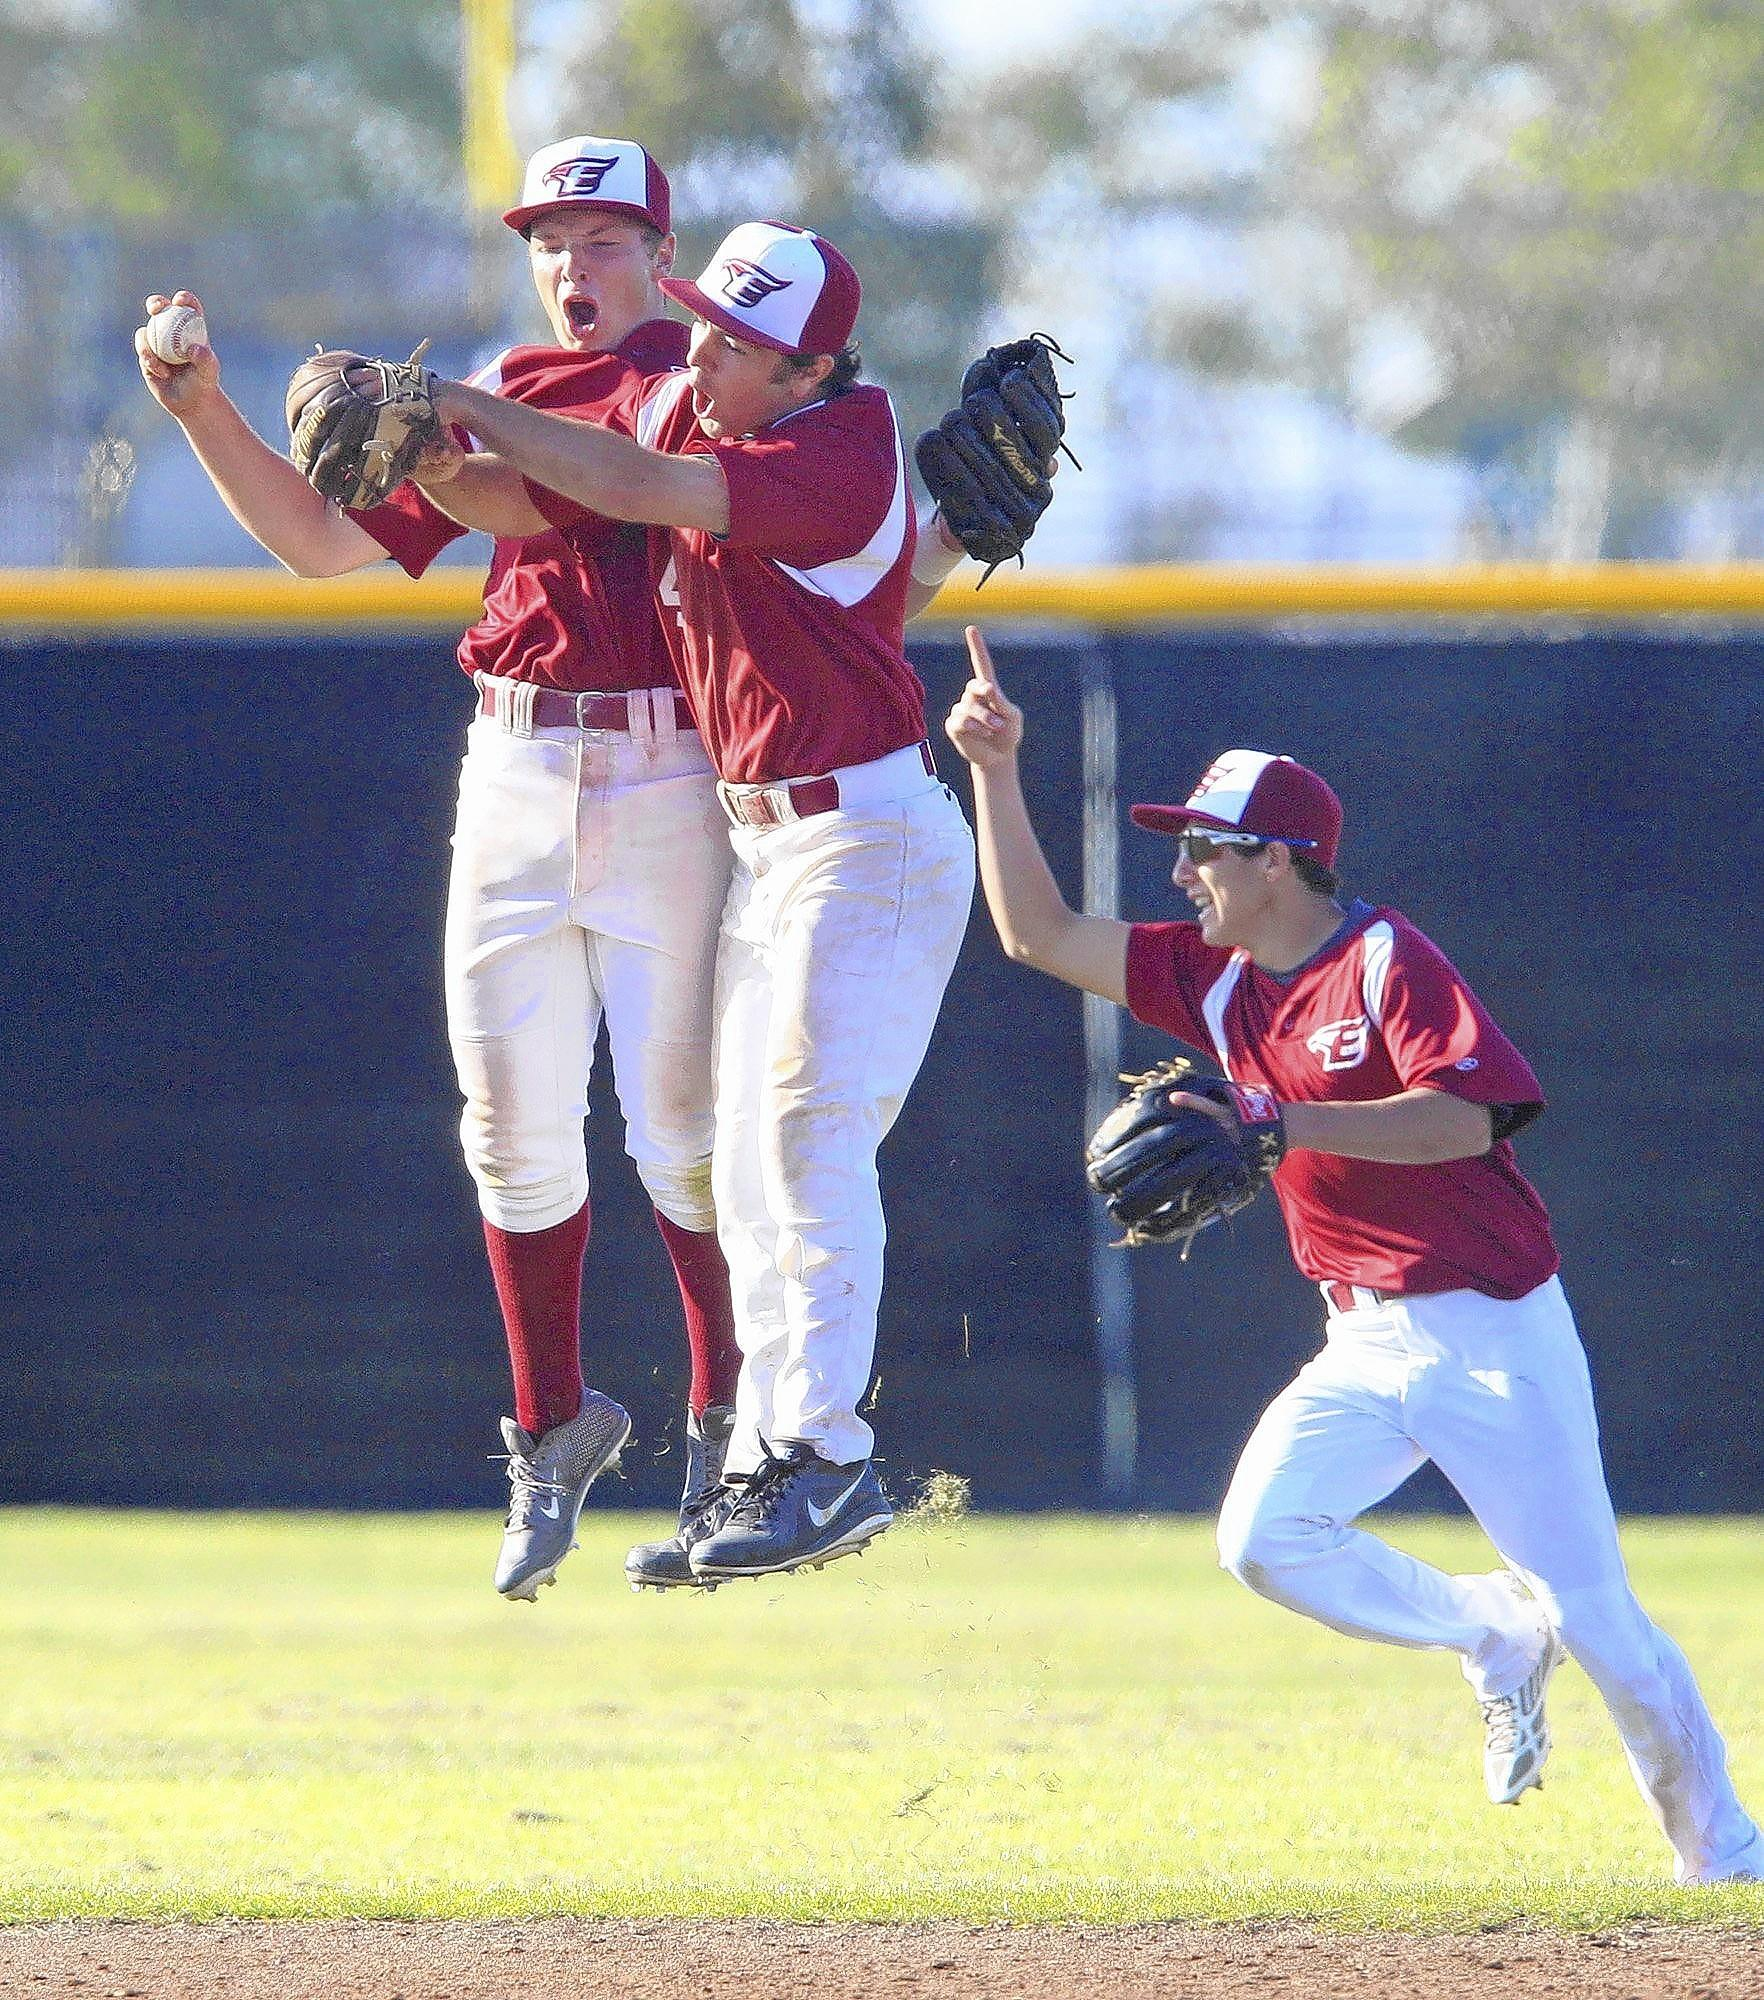 Estancia High's Jackson Letterman, left, Zach Shafer, center, and Dylan Laurent, right, celebrate after Letterman secured the last out to beat Costa Mesa, 2-0, on Wednesday in the second game of a three-game series.